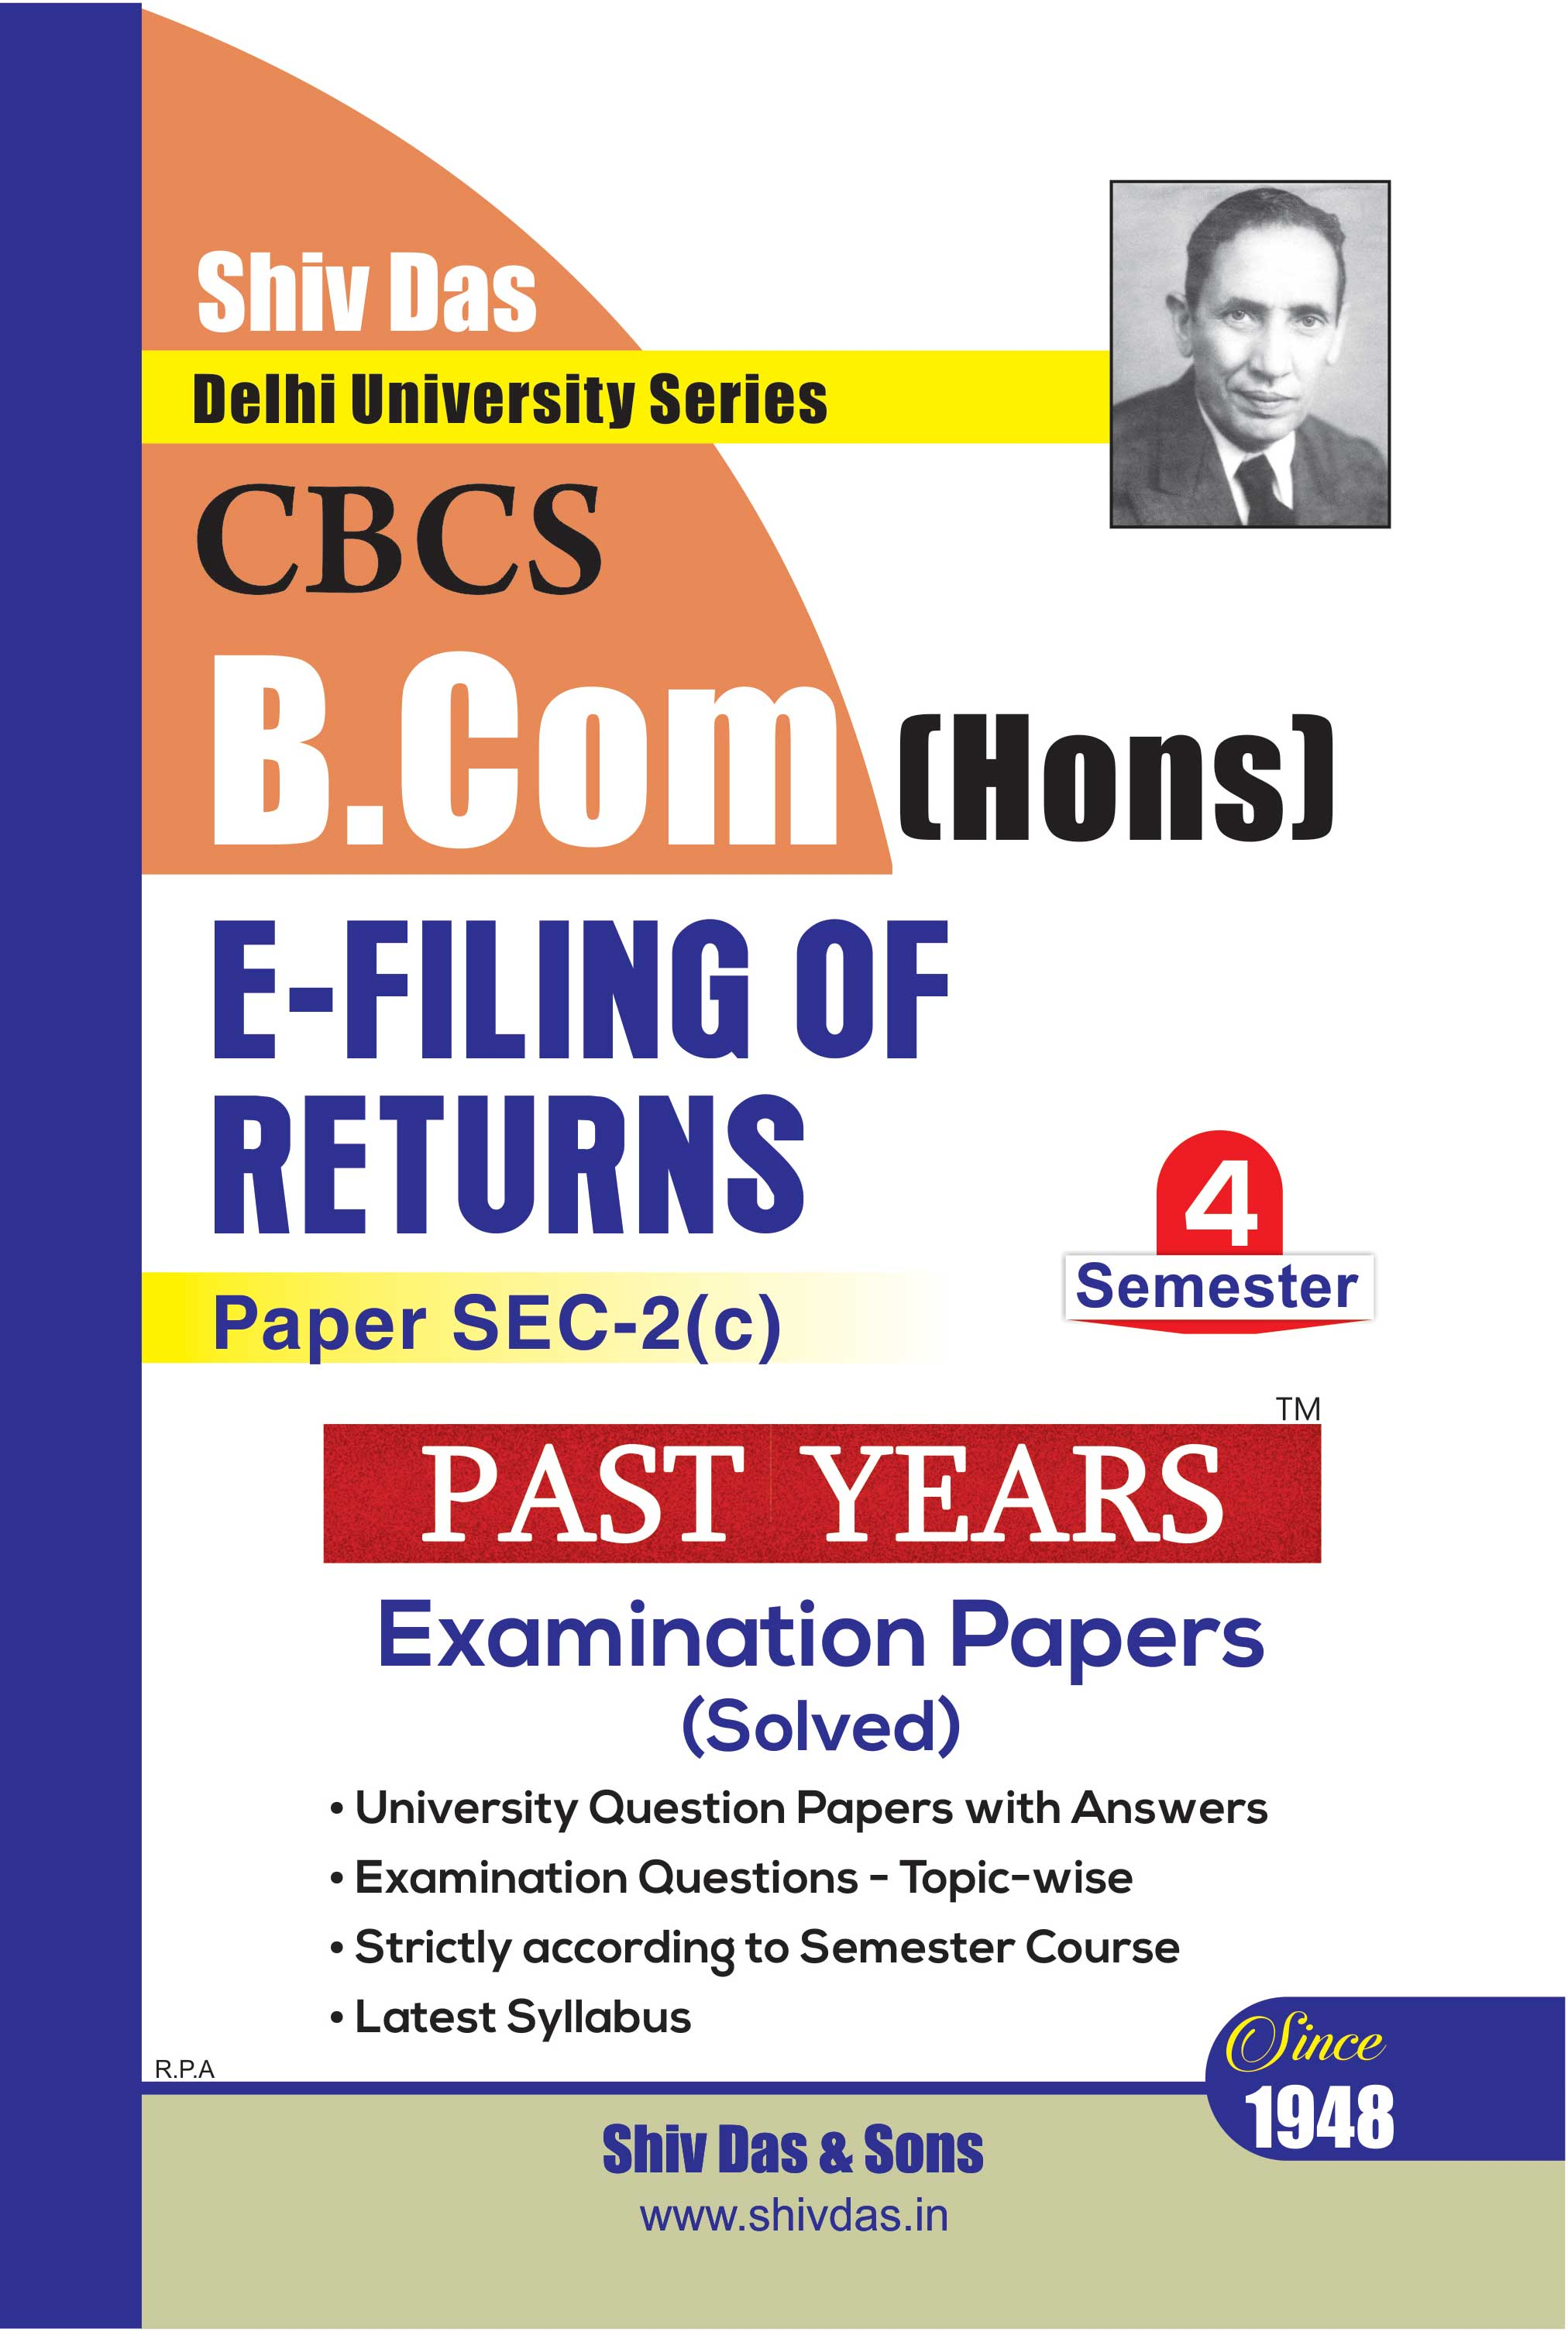 E-Filing of Returns for B.Com Hons Semester 4 for Delhi University by Shiv Das